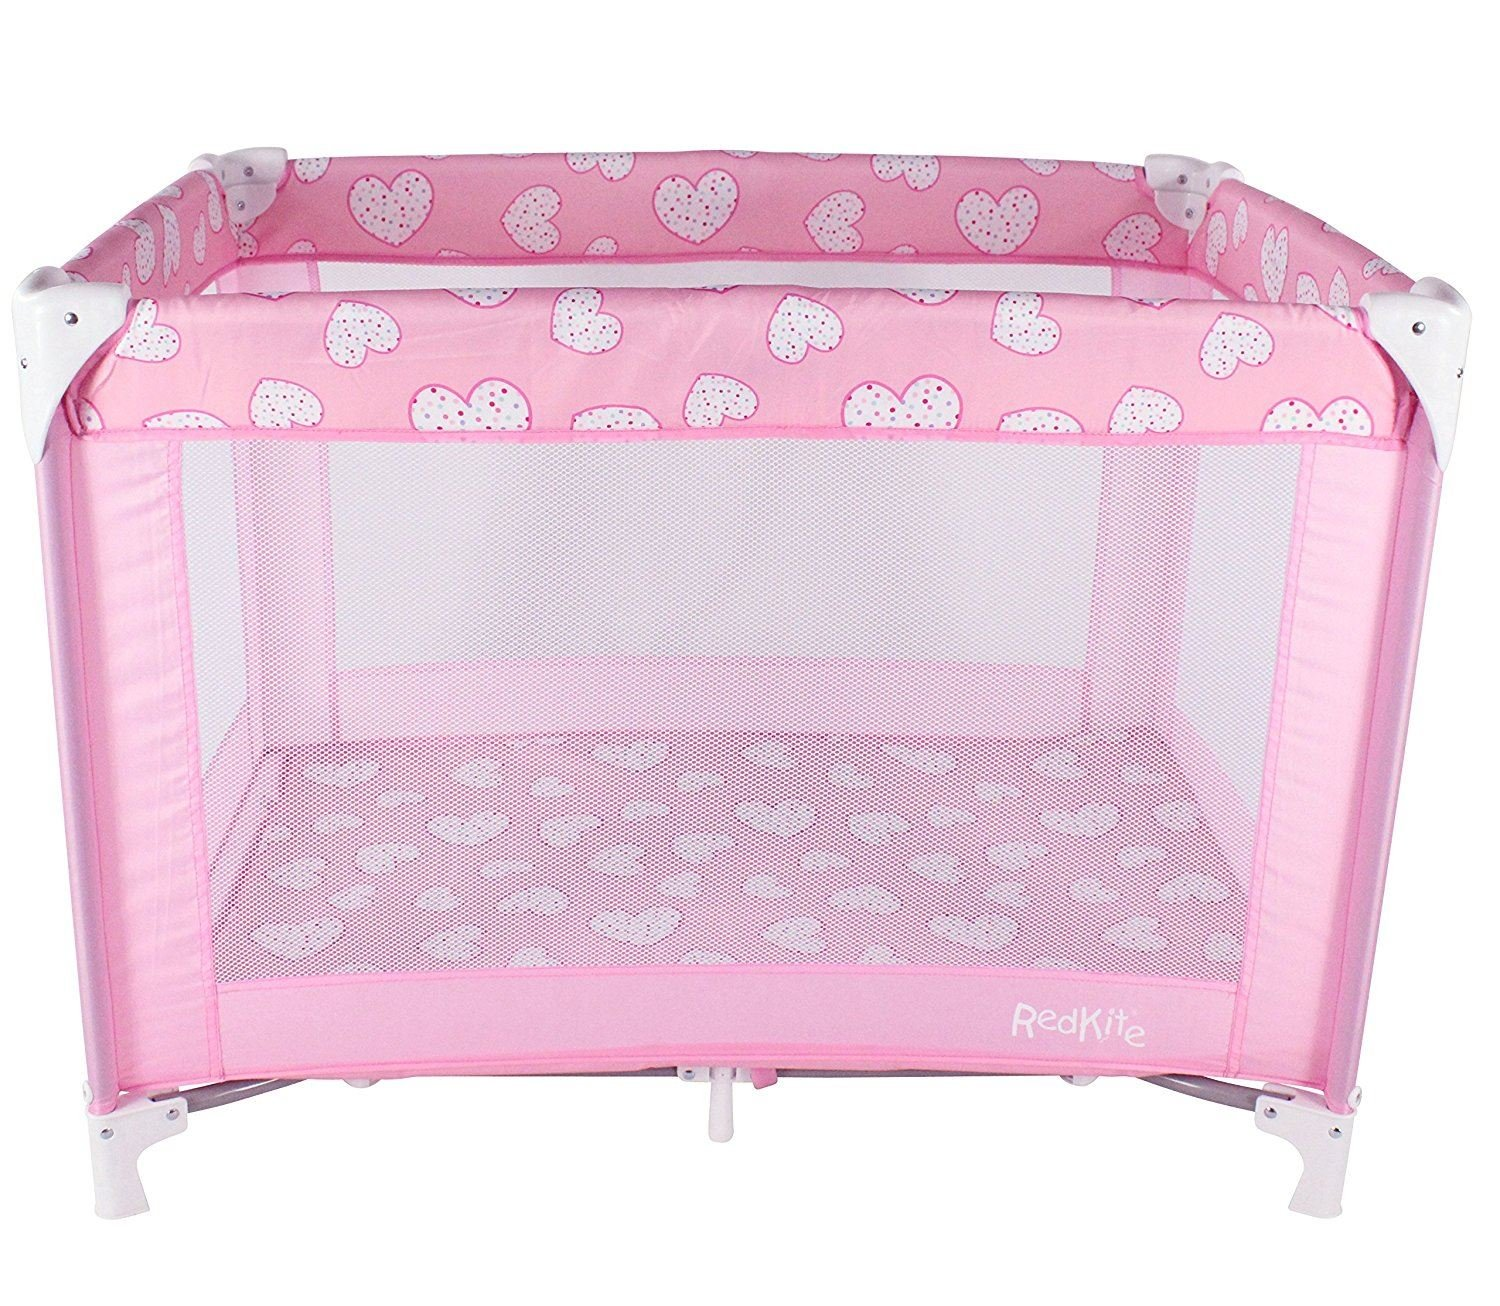 Redkite Sleeptight Travel Cot - Pink Pretty Kitty Brand New Baby (Dispatched from UK)